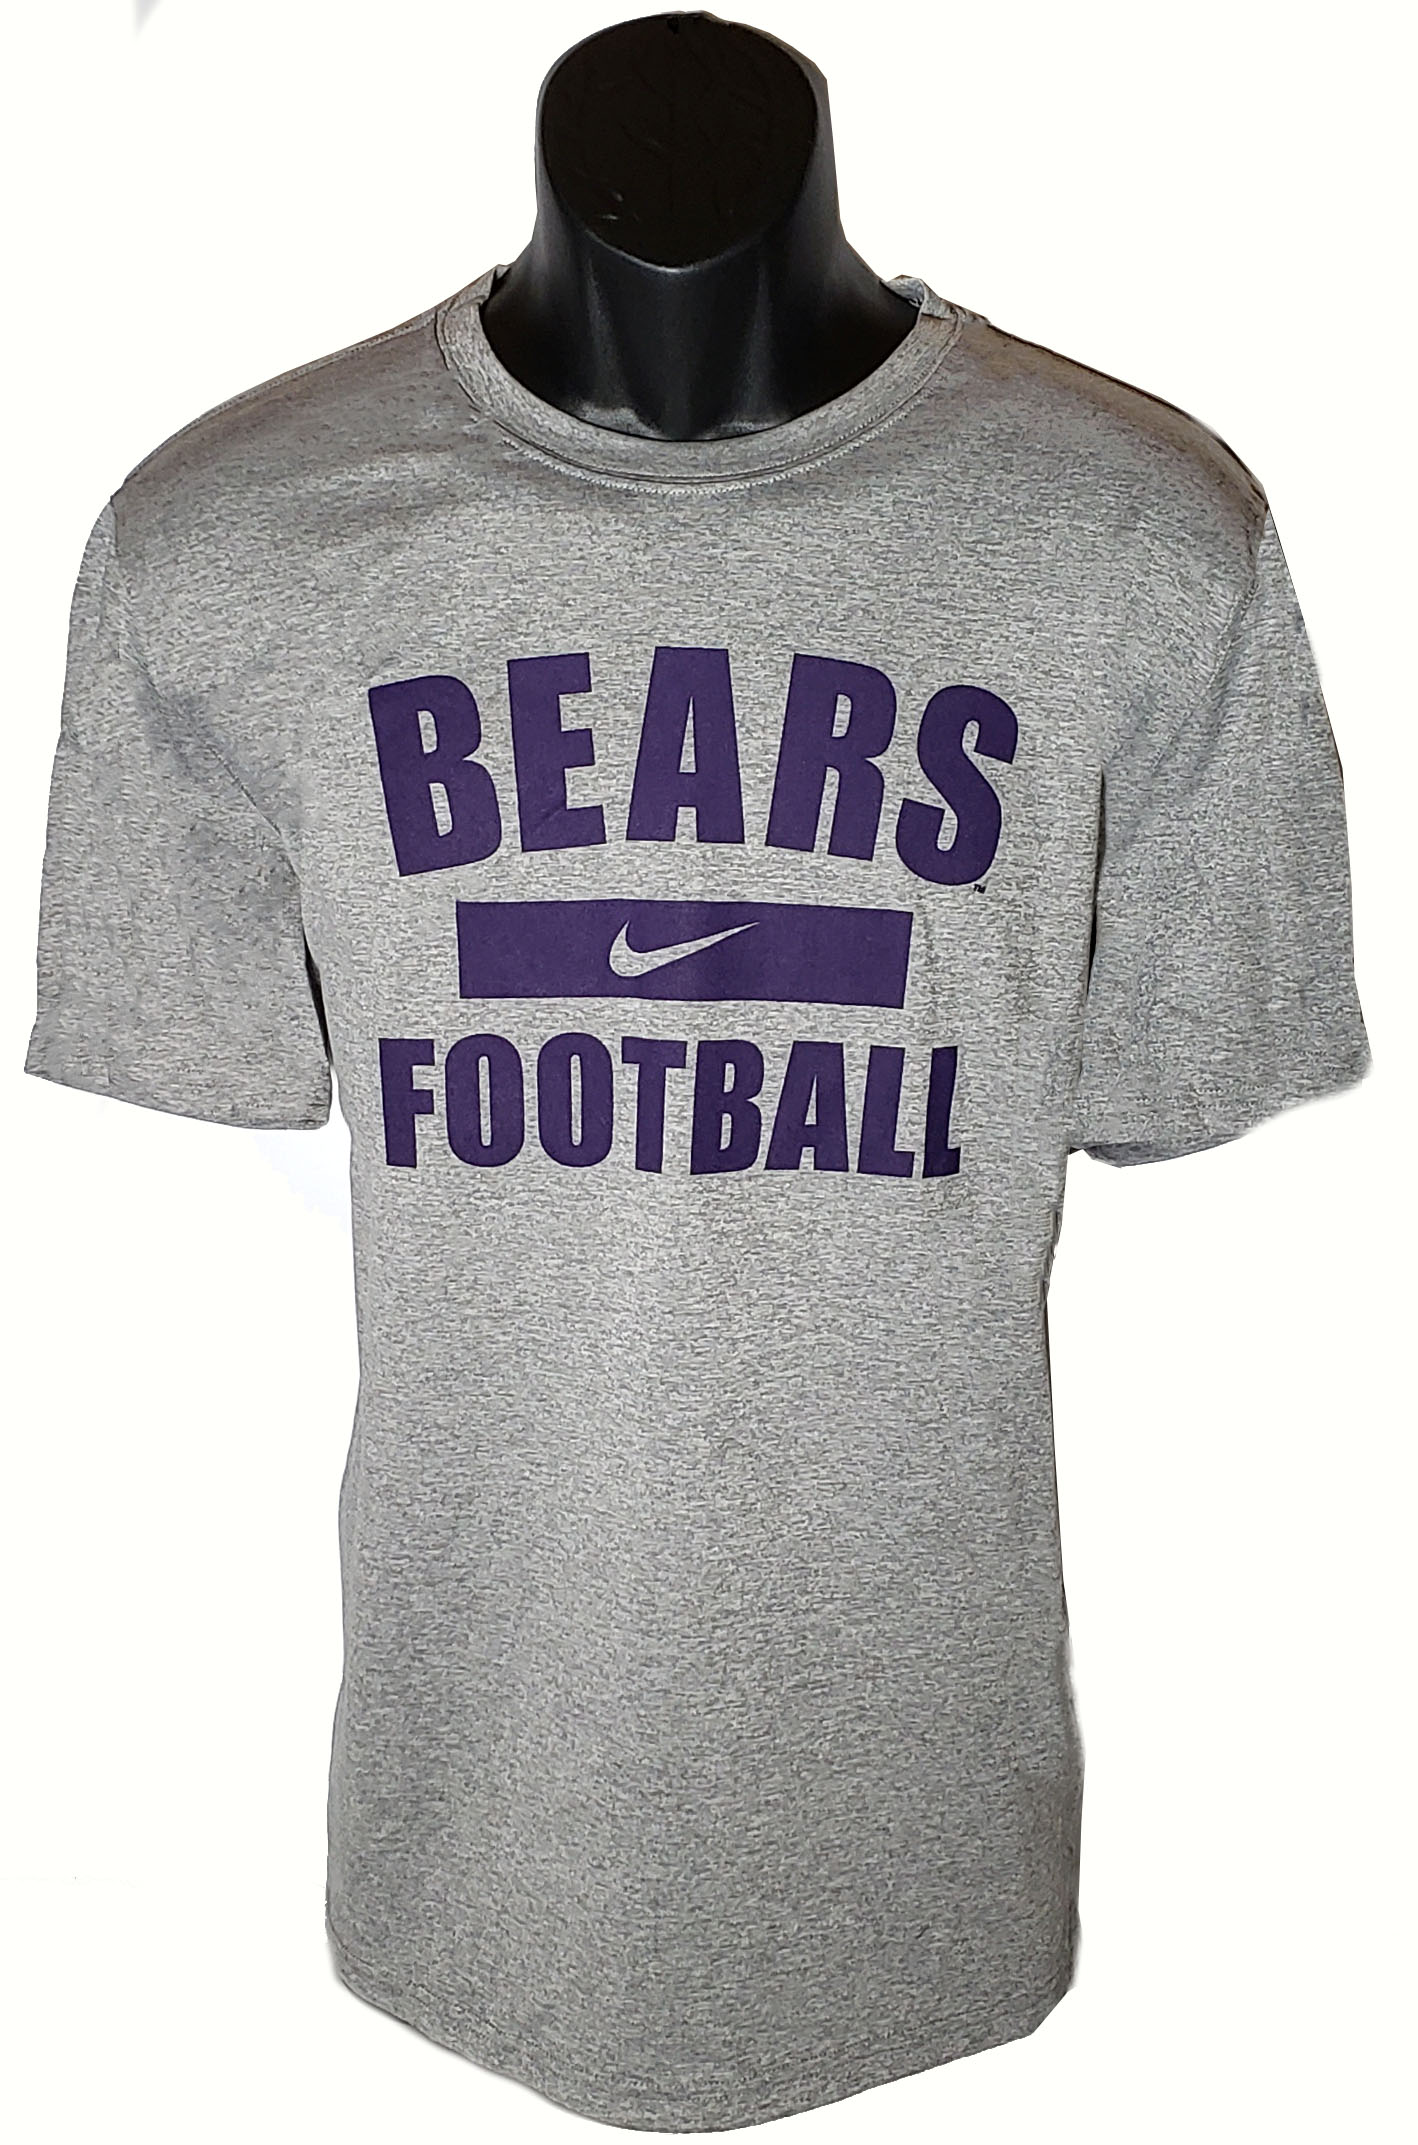 Bears Football Dri Fit Tee